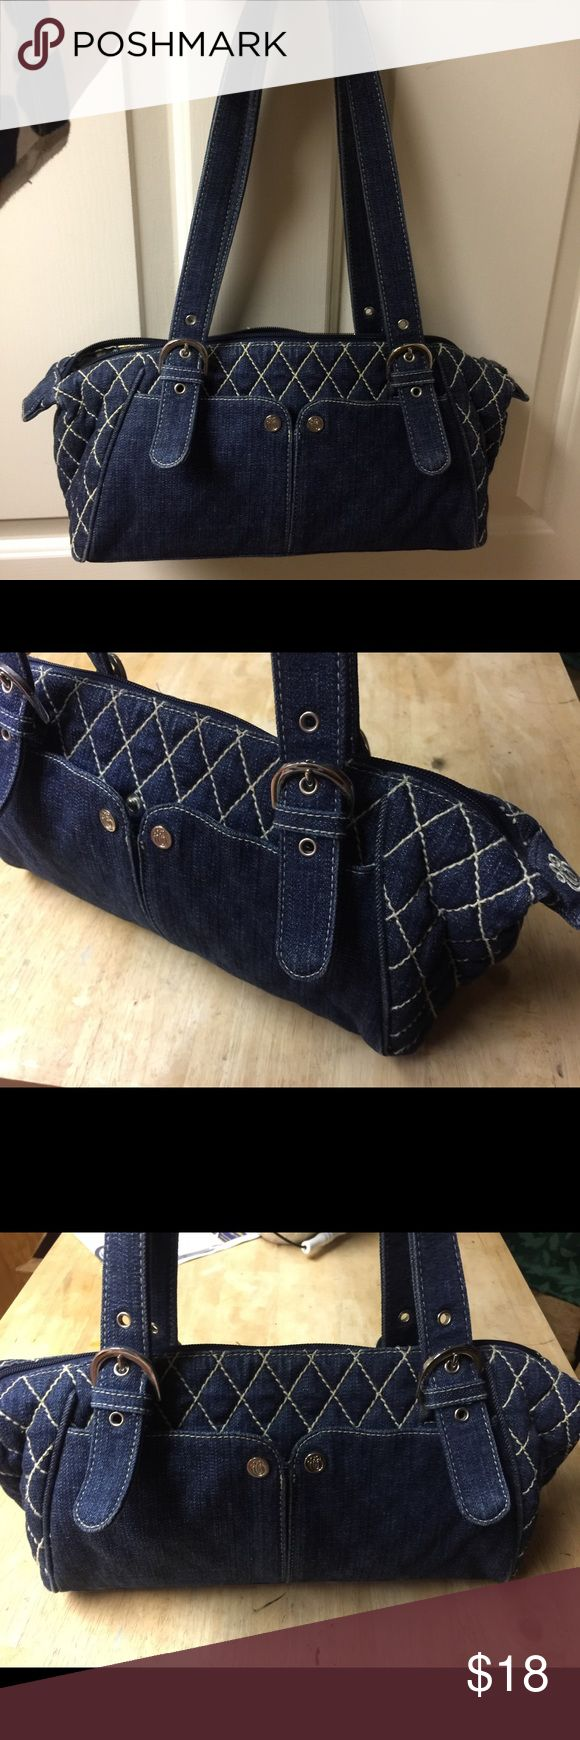 """Vera Bradley Shoulder Bag Denim quilted with blue and white paisley lining.  Length of purse is 10"""" and depth is 7"""".  There are 2 pockets on the outside and a large zippered pocket on the inside.  Gently used condition Vera Bradley Bags Shoulder Bags"""